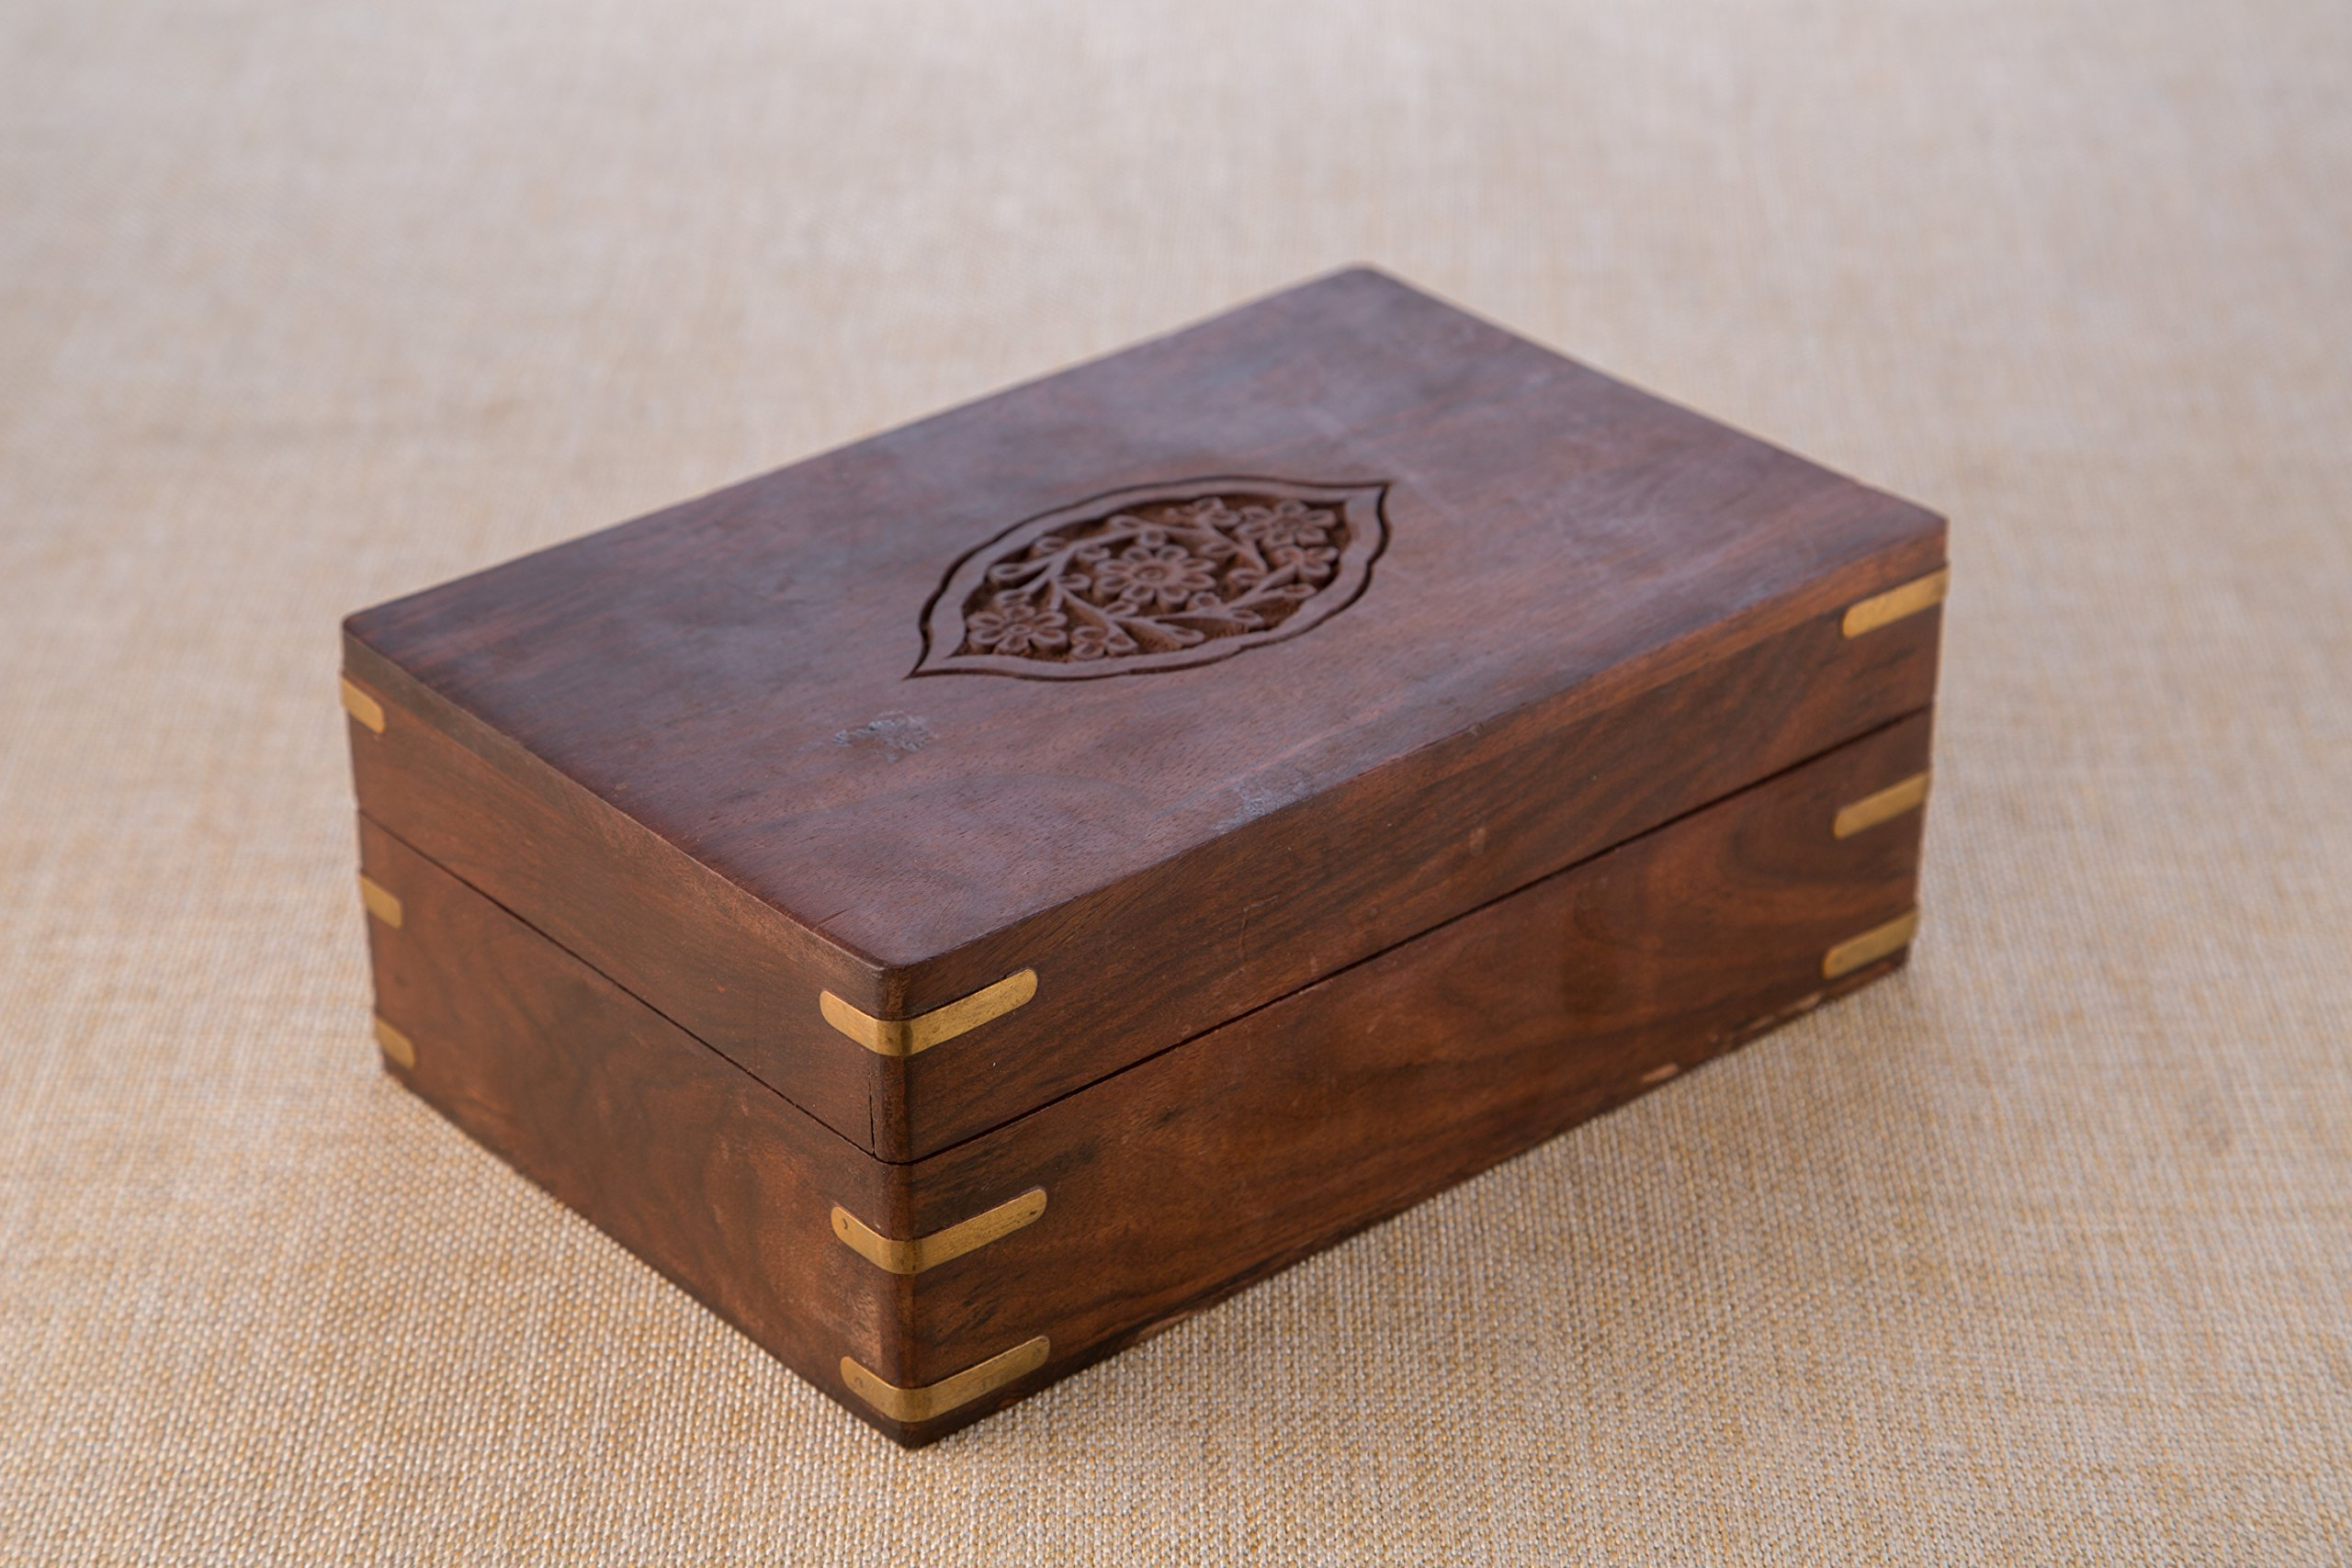 Rusticity Indian Rosewood Antique Treasure Storage Chest Box for Condiment Spice&Jewellery/Vintage Rustic Keepsake Trinket Organizer w/9 Compartments/Handmade Decorative Sheesham Wood Caddy Tea Bag by Rusticity (Image #3)